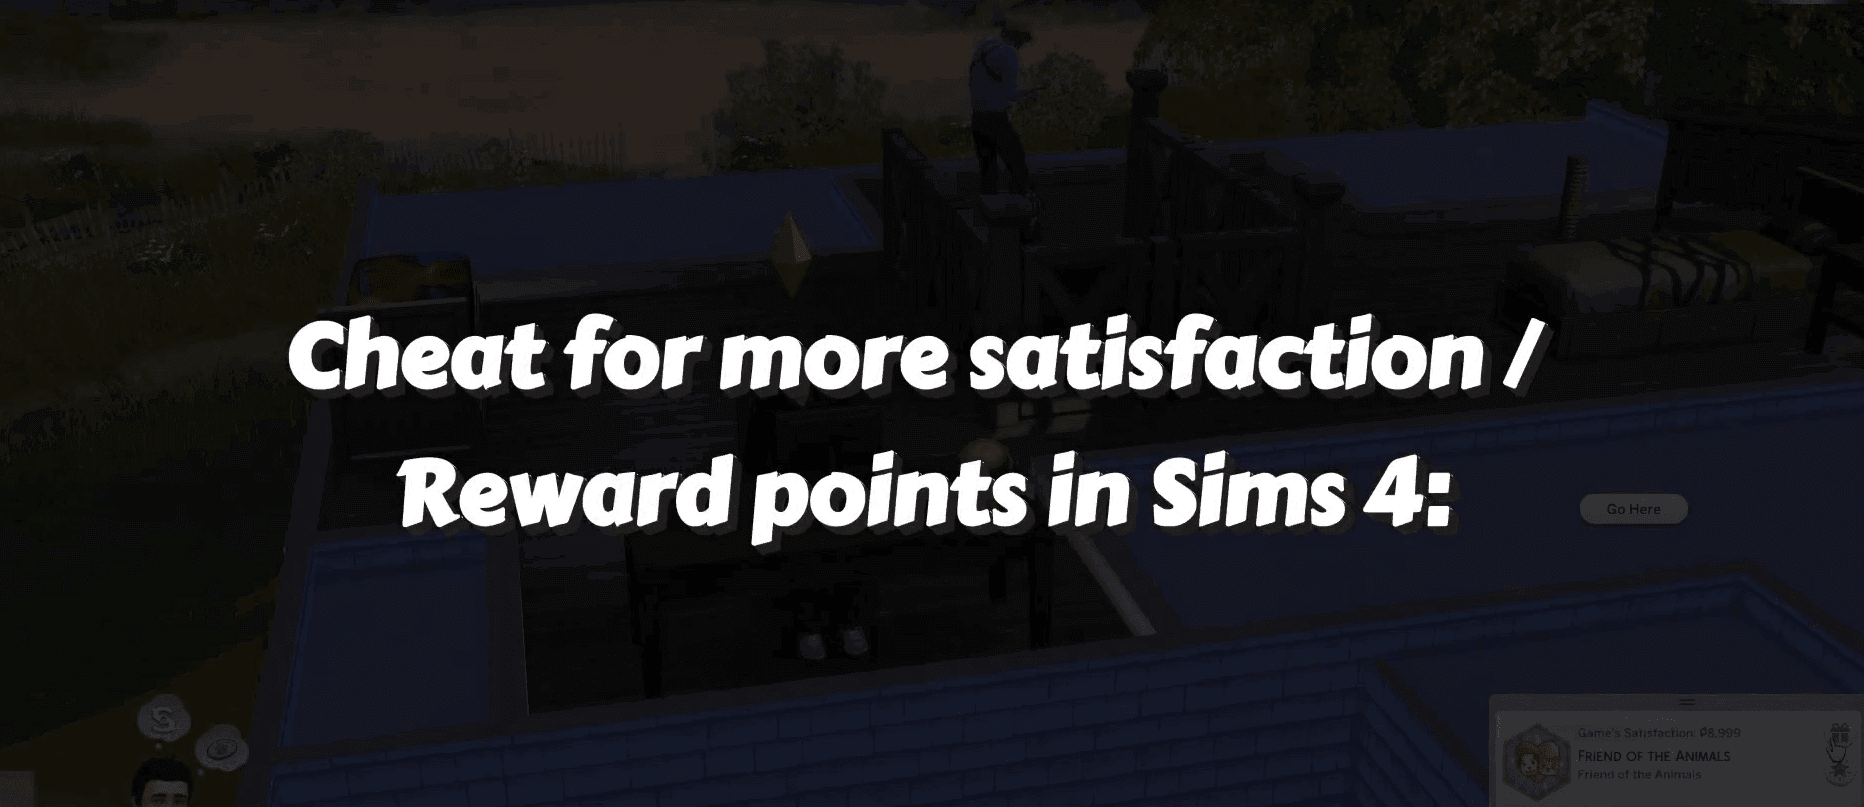 The Sims 4 Satisfaction cheats reward points